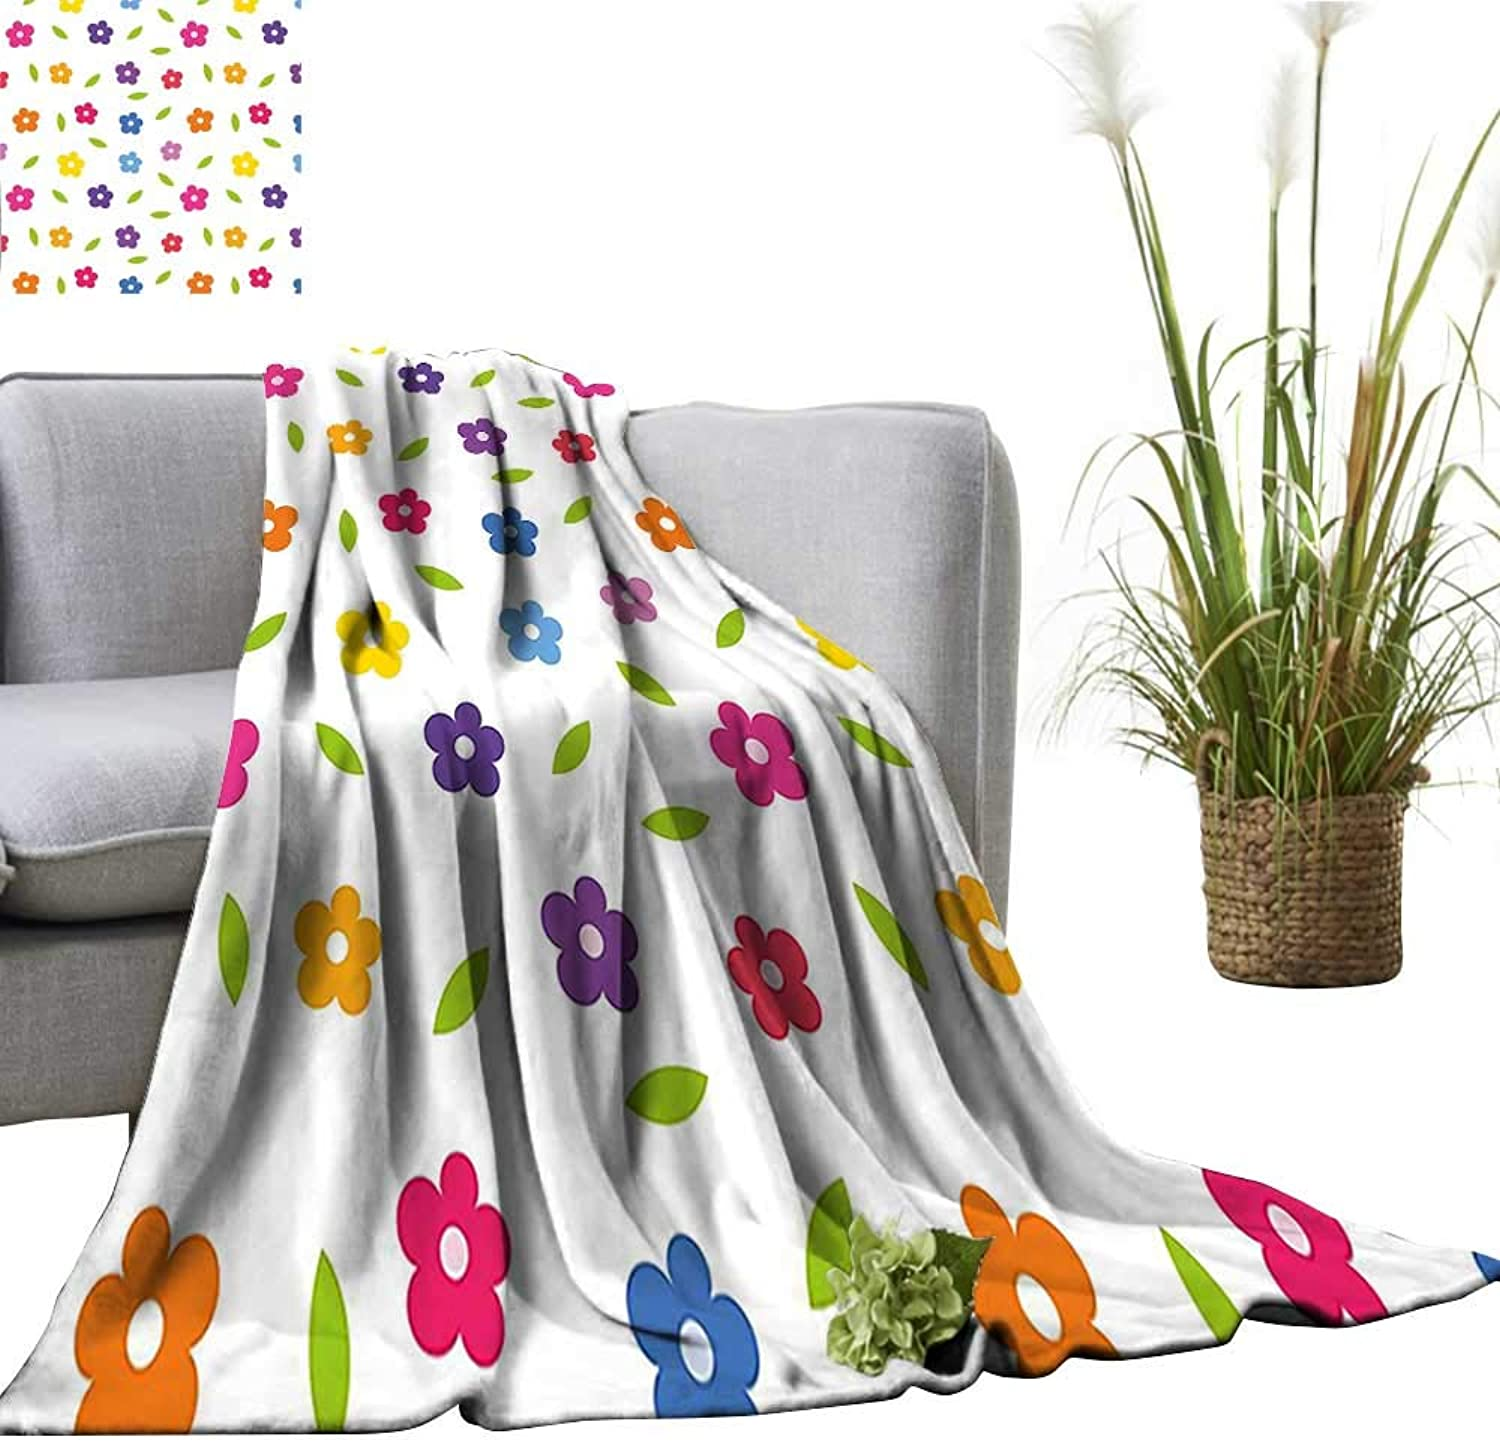 YOYI Travel Blanket colord Daisies Leaves Spring Nature Meadow Doodle Boys Girls Playroom Easy to Carry Blanket 50 x70